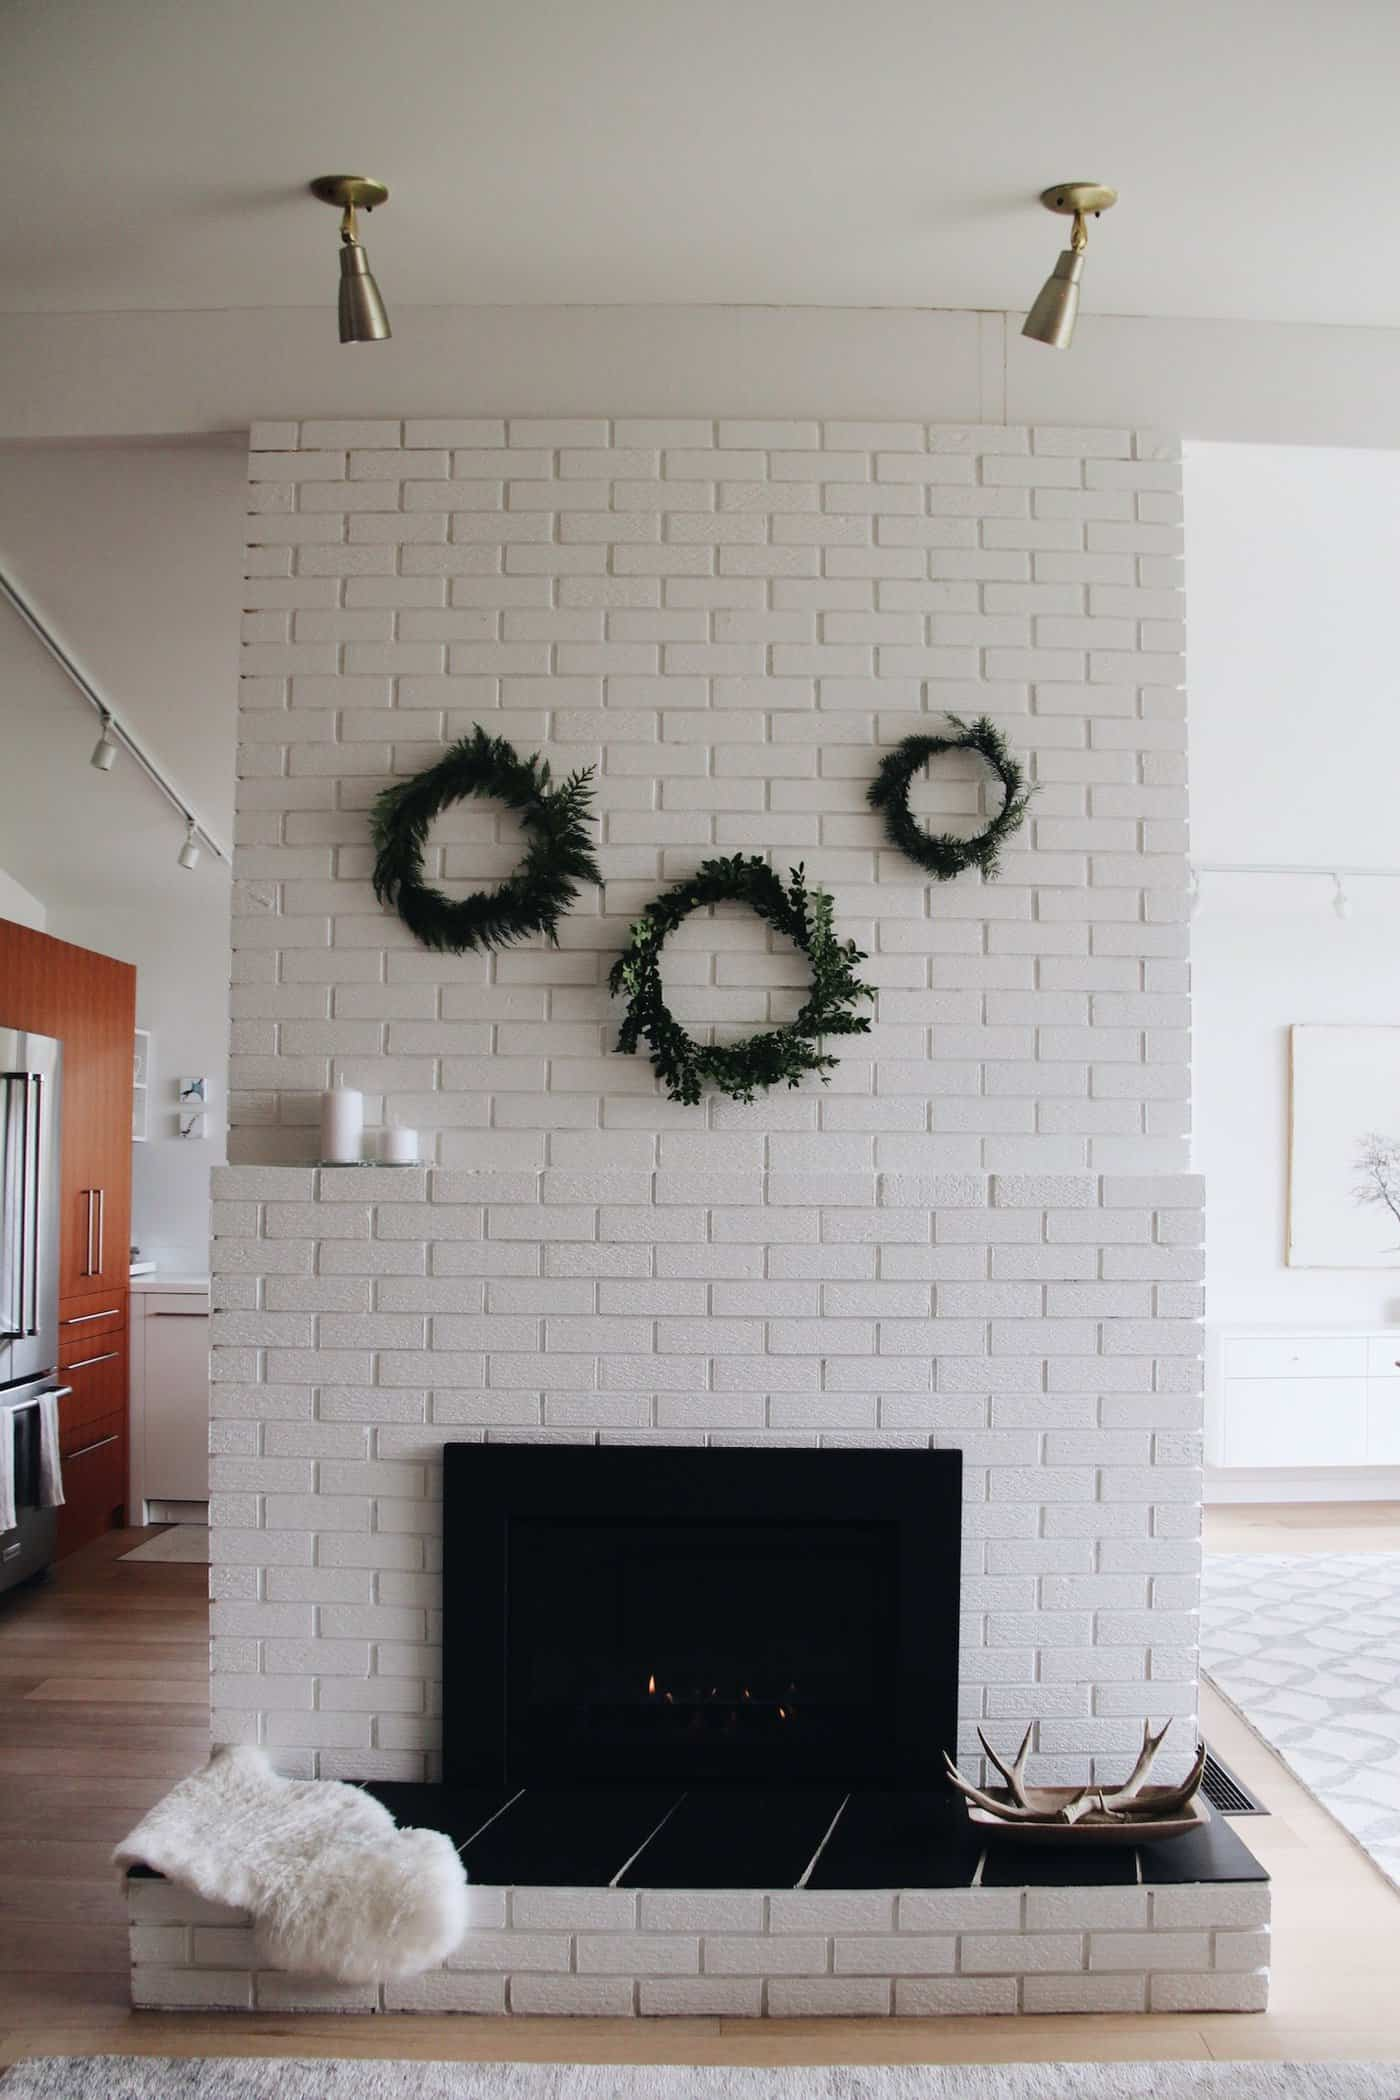 Fresh Simple Holiday Wreaths On Modern Mantle - Home For